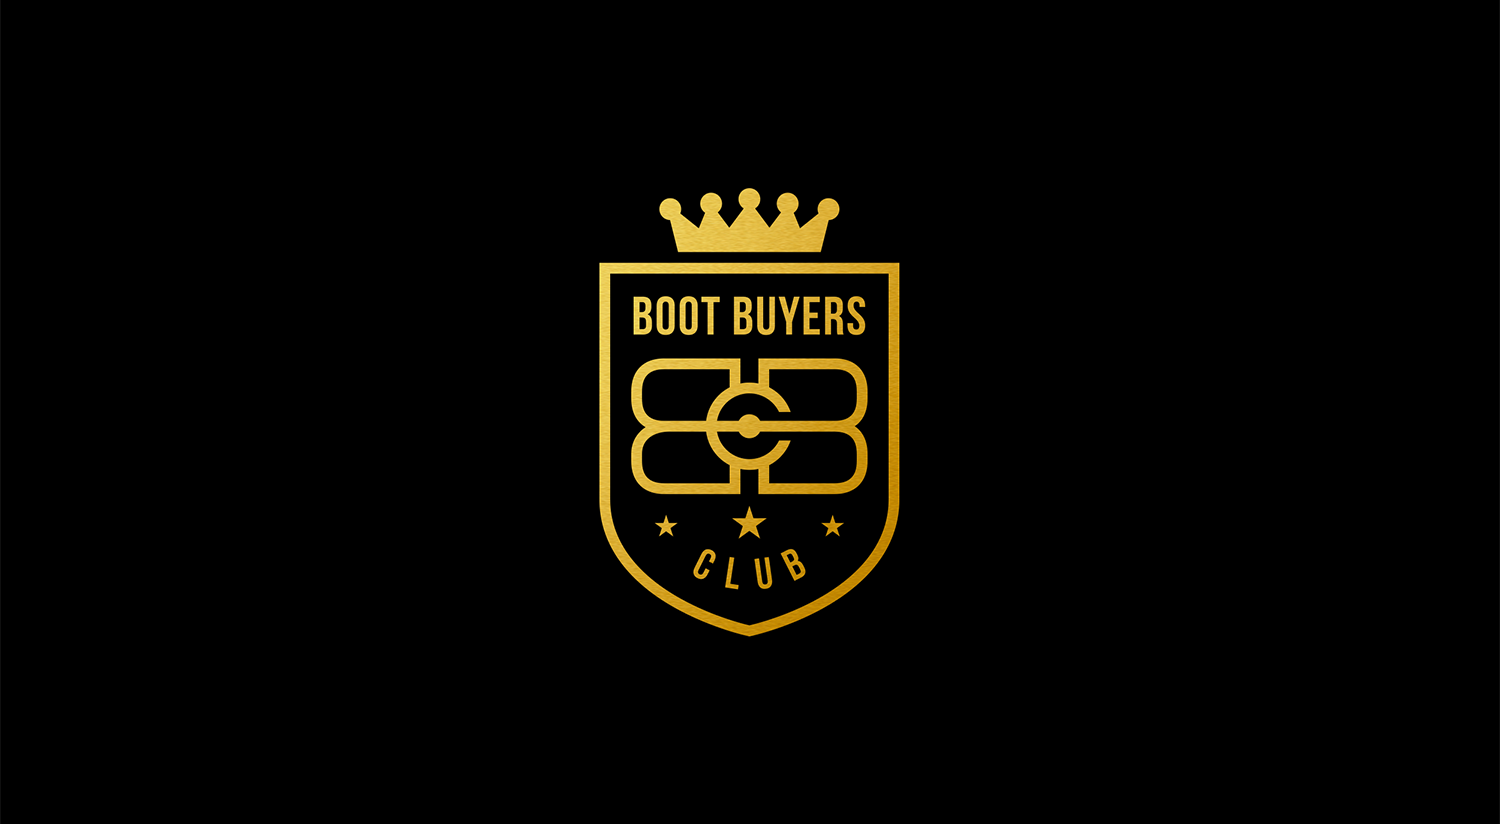 Boot-Buyers-Club-Logo-Design-Brand-Mockup-Crop